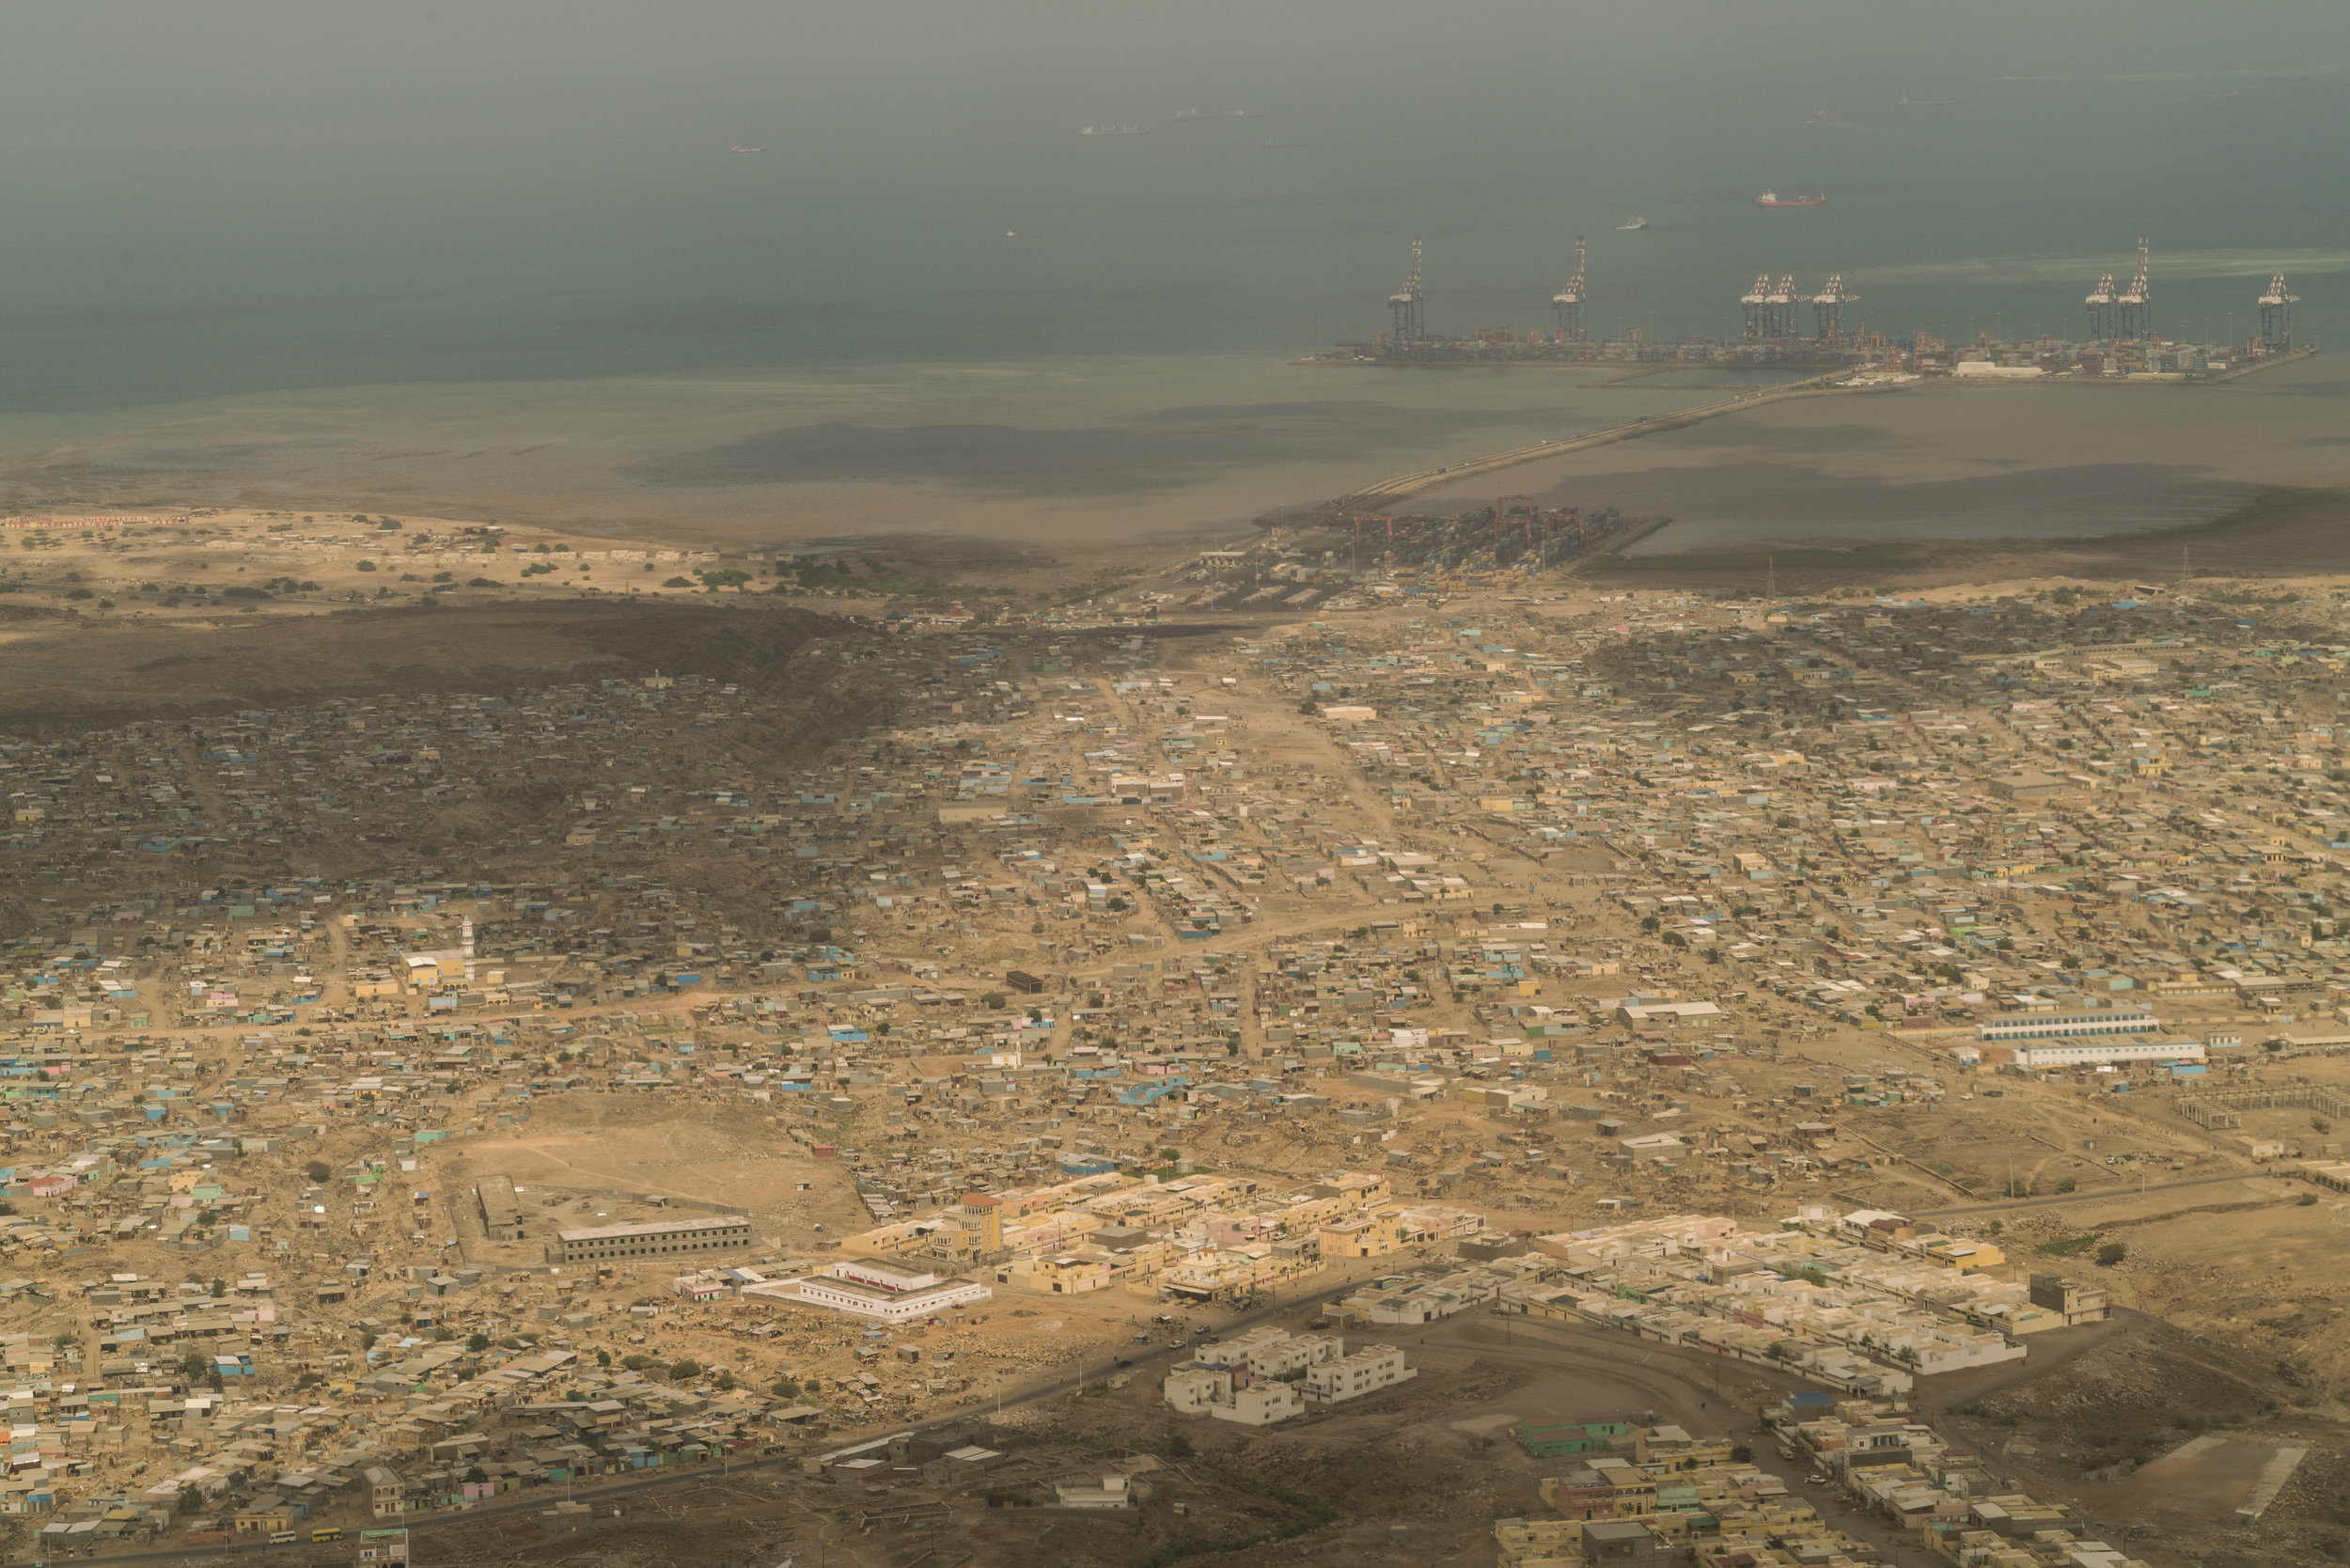 The industrial port city, home to French and American military bases, and a gateway to the Middle East, the capital Djibouti, January 11, 2016.